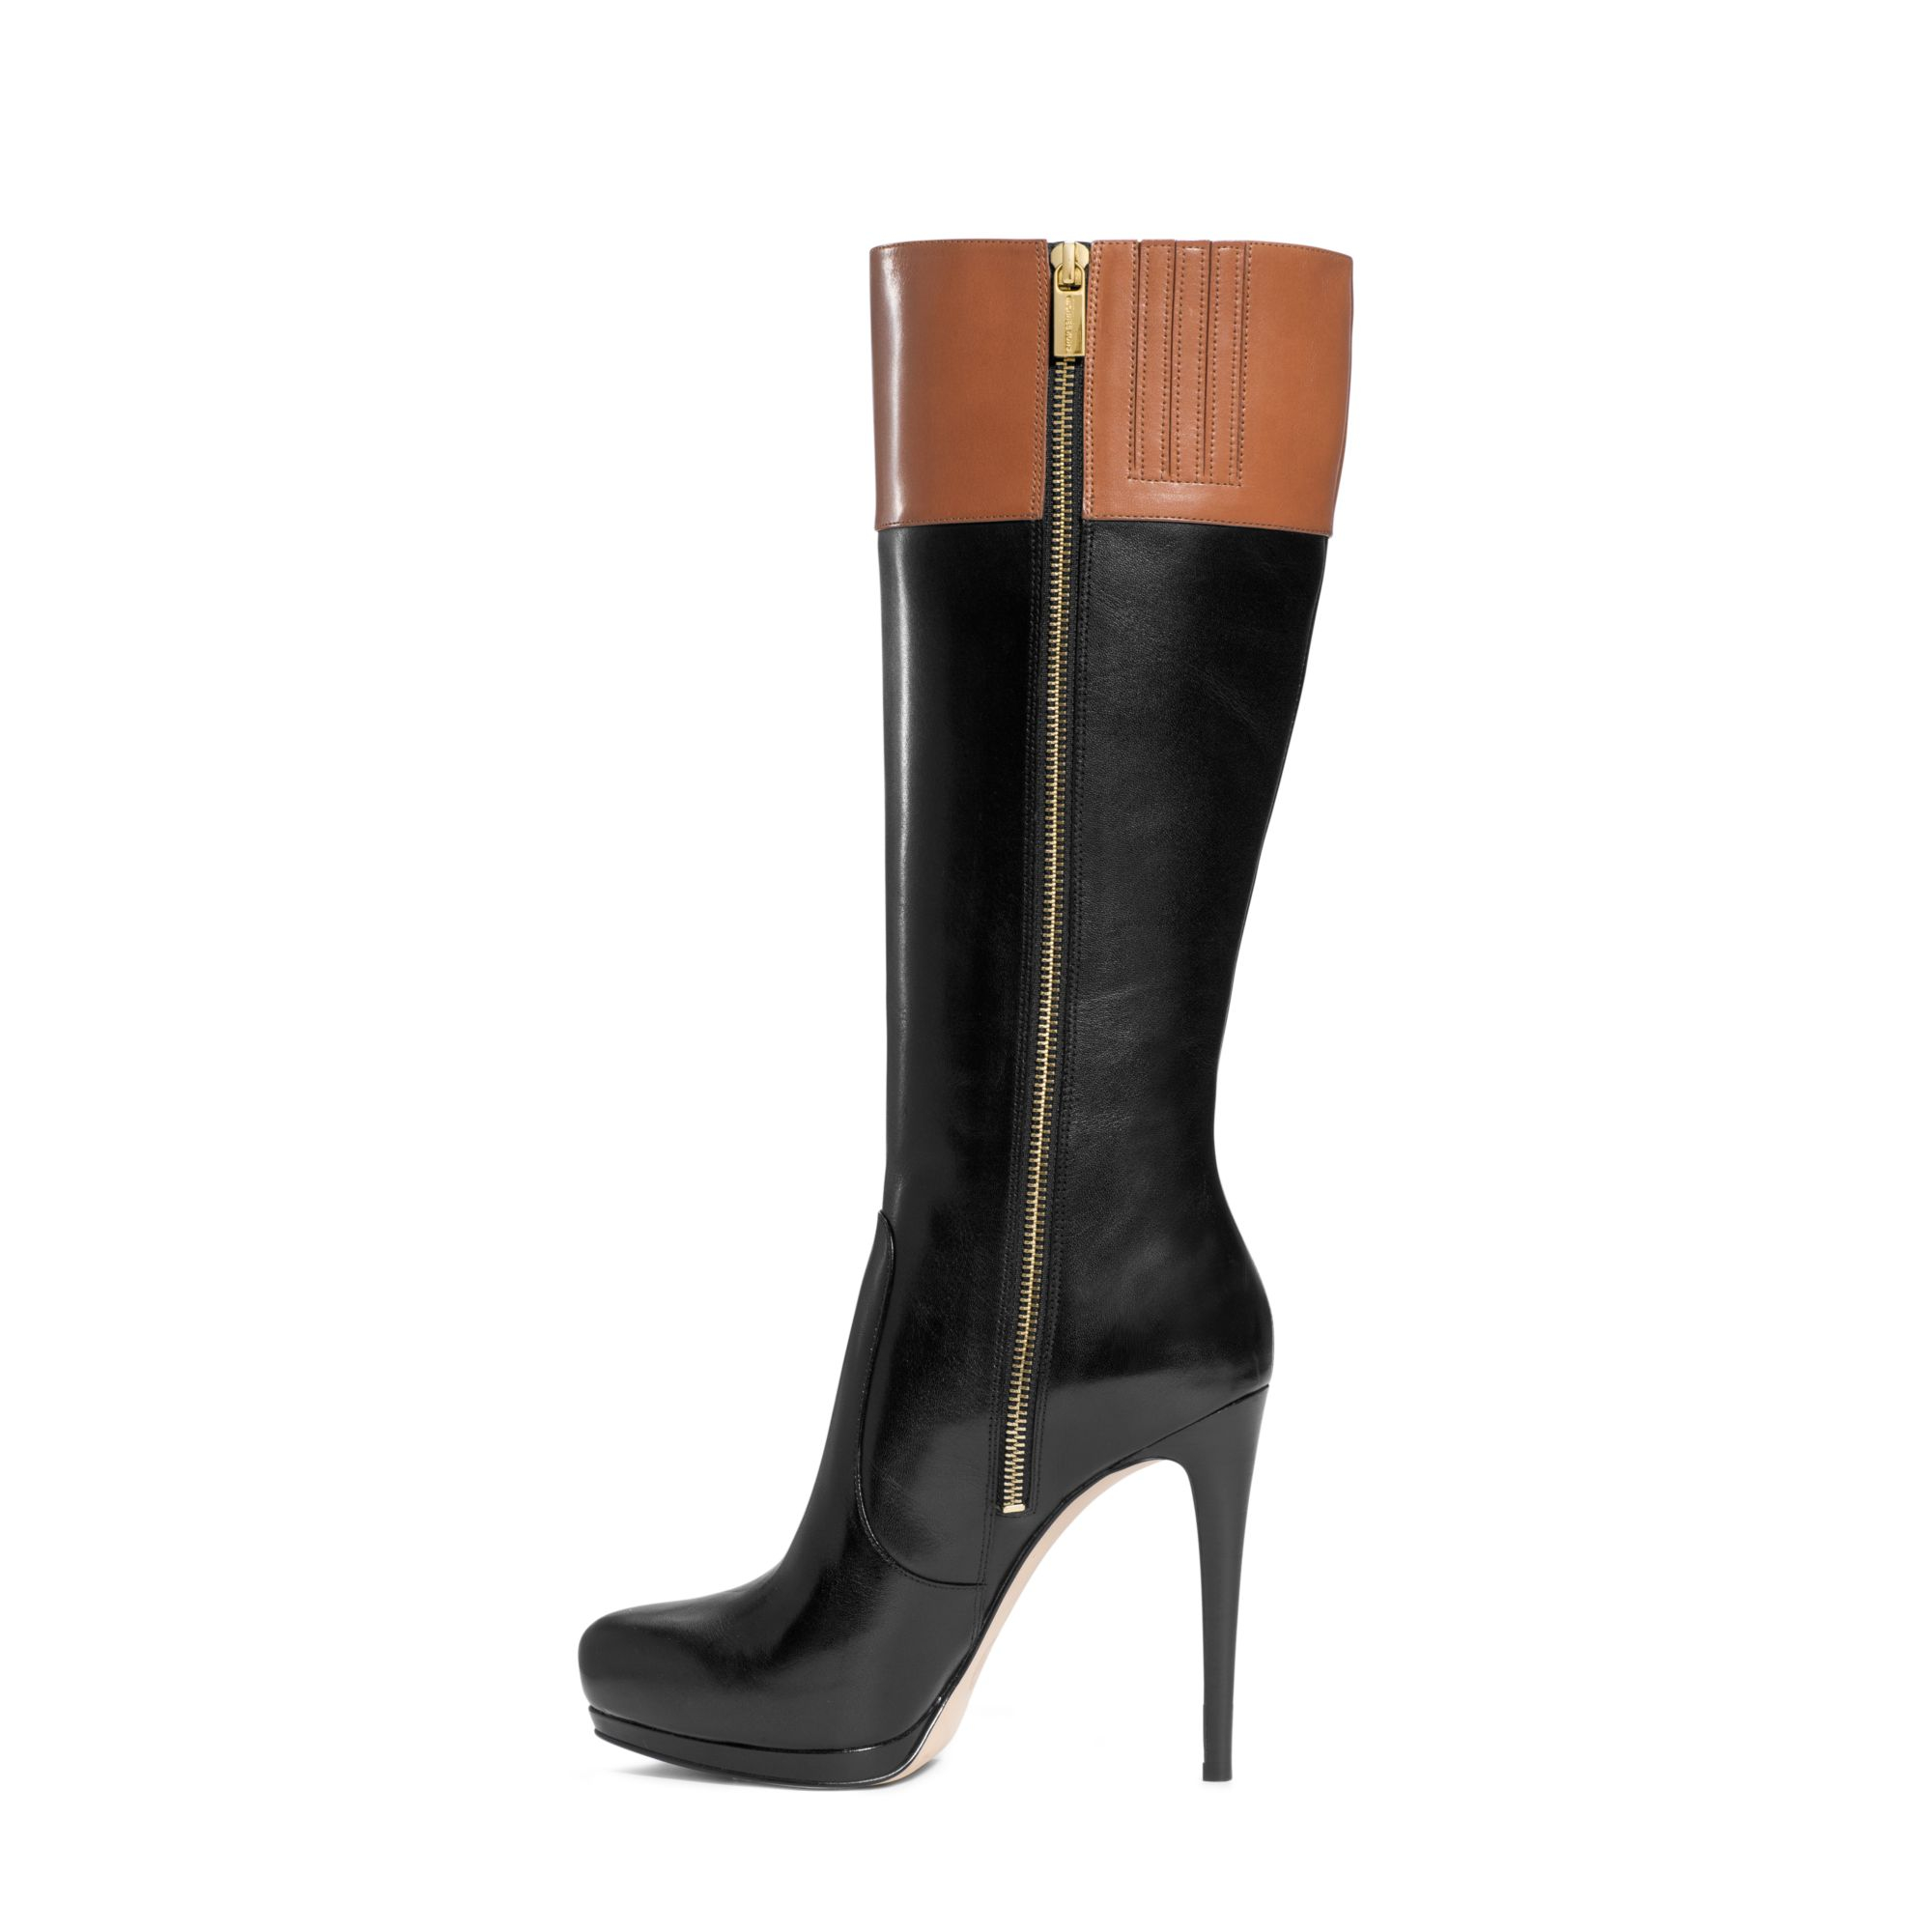 f73a4592be16 Michael Kors Hayley Boot in Black - Lyst